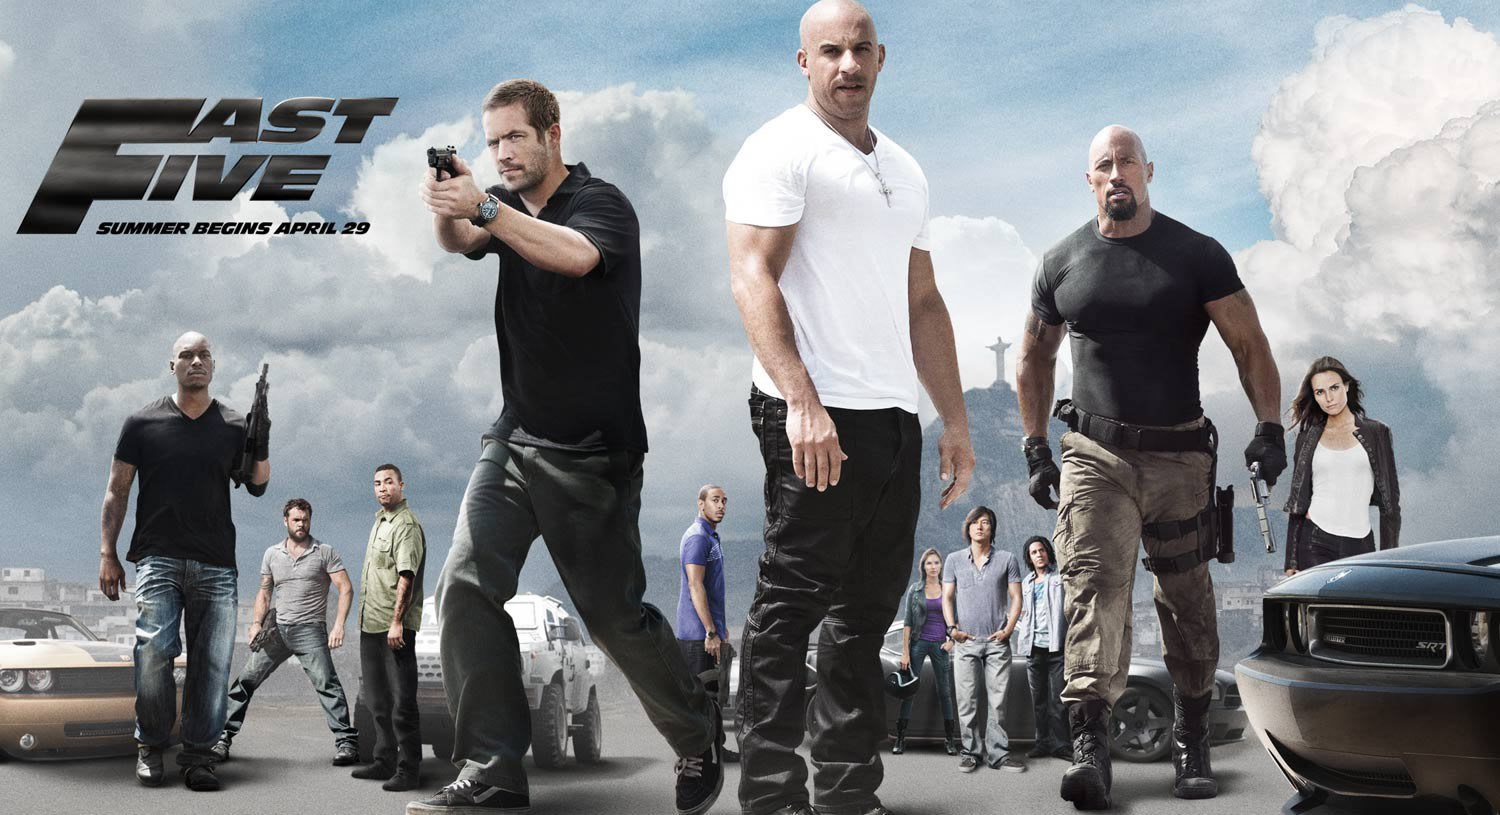 Fast Five Download Movie - The Fast and the Furious 5 Download Movie